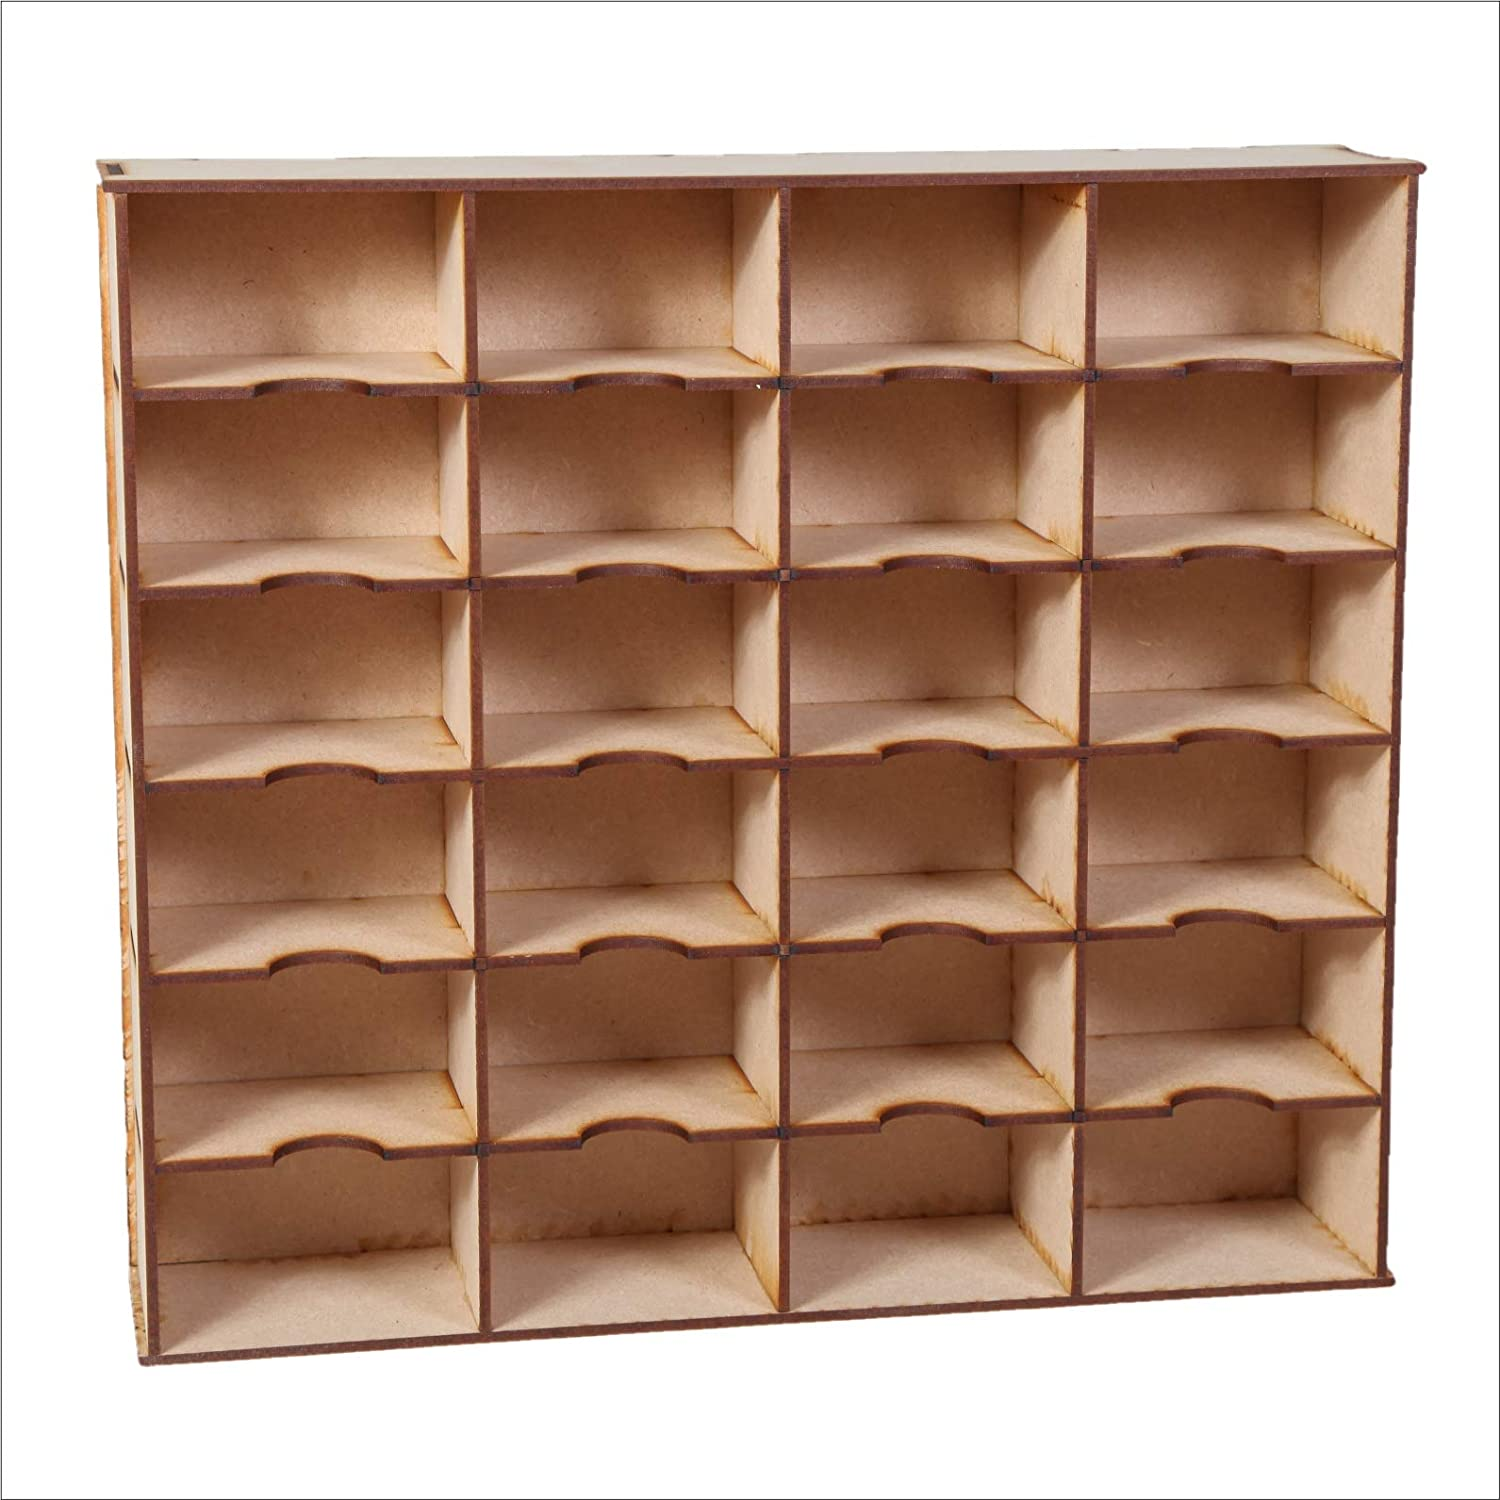 Ink pad Storage Holder for Tim Holtz Sized Distress Inks Holds up to 48 Ink Pads